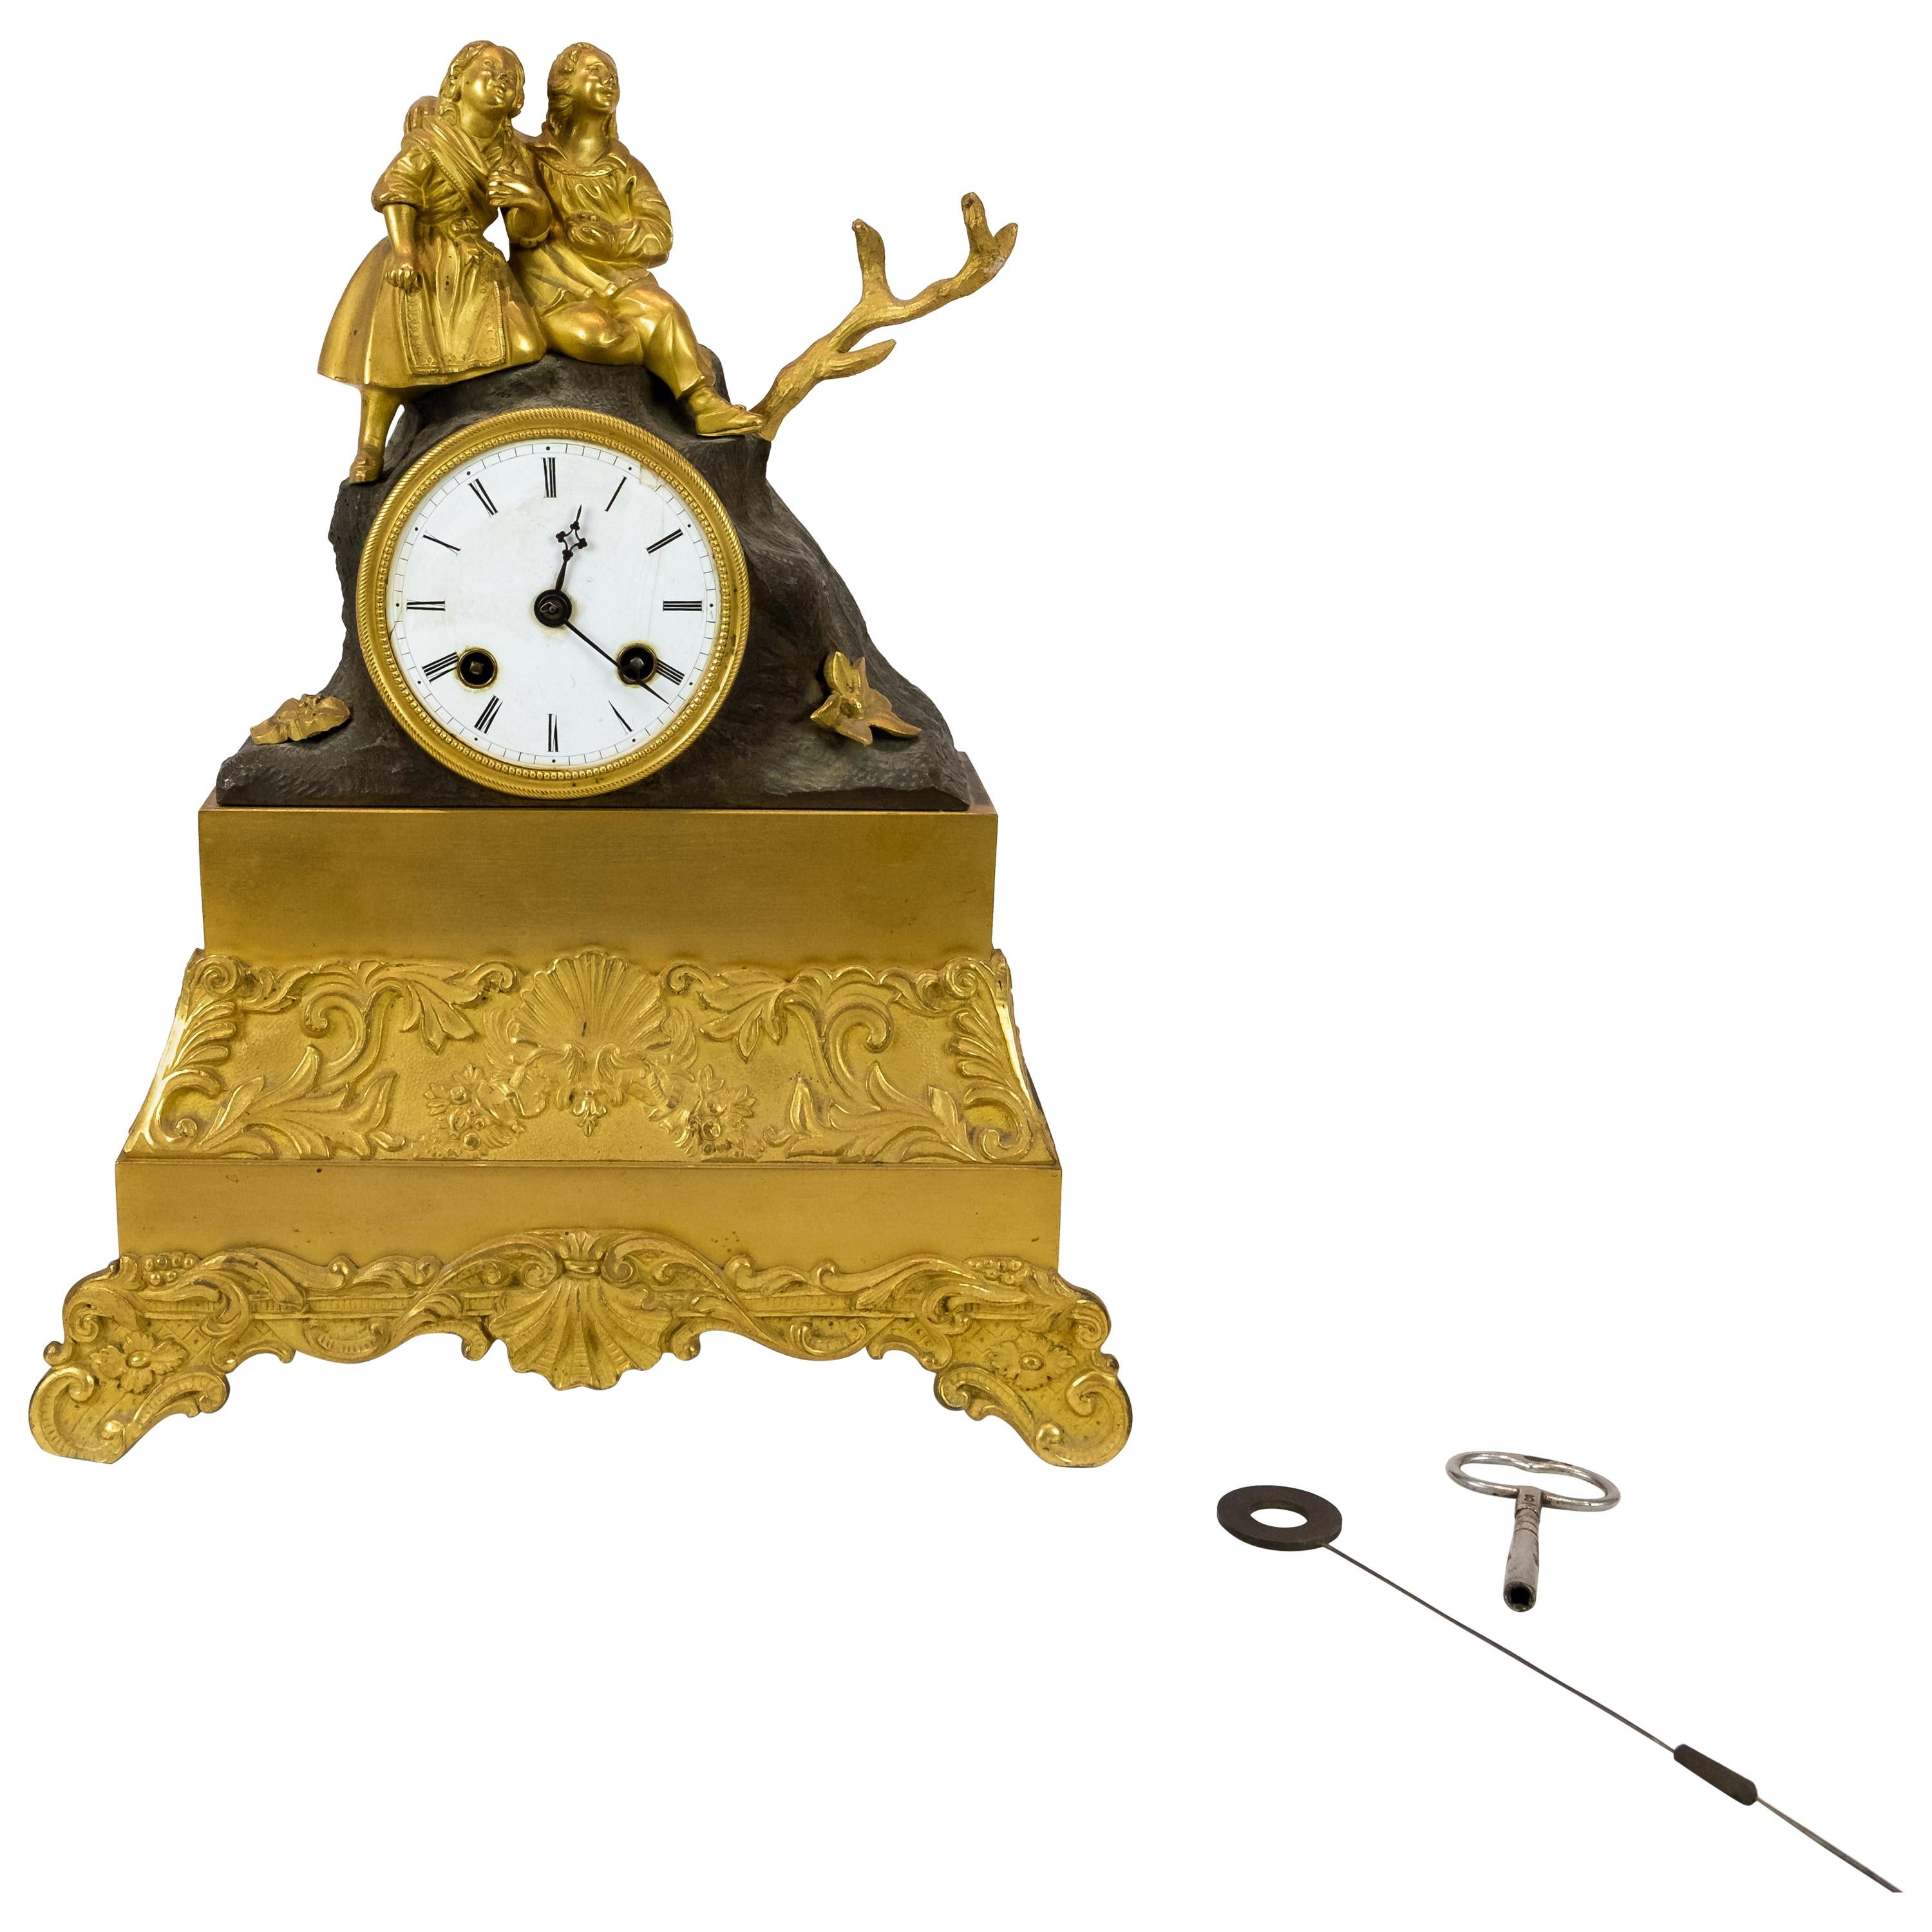 French Fireplace Clock of Gilded Bronze from circa 1820s